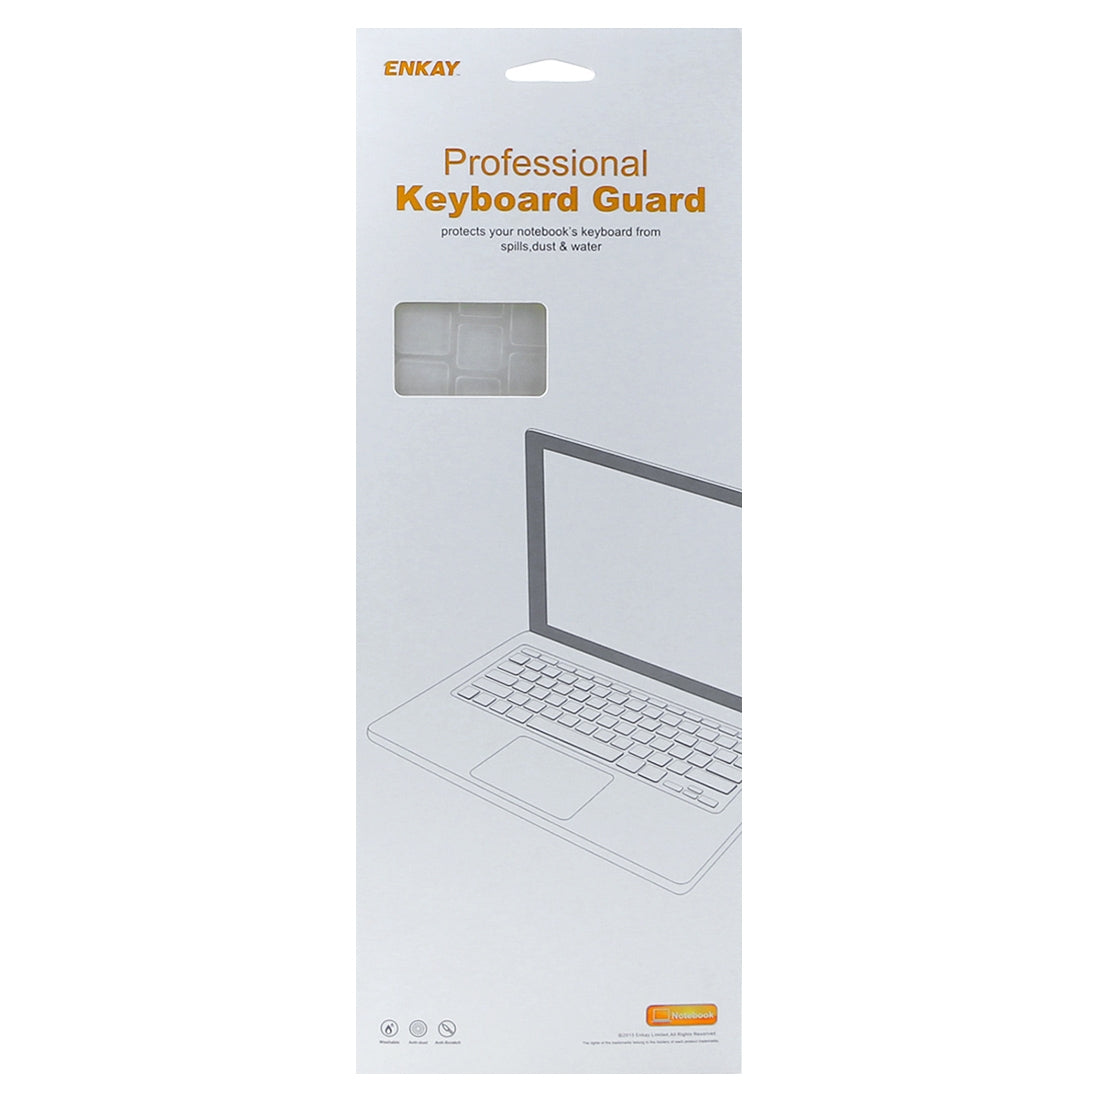 ENKAY Keyboard Protector Cover for Macbook Pro 13.3 inch & Air 13.3 inch & Pro 15.4 inch, US Version and EU Version, French